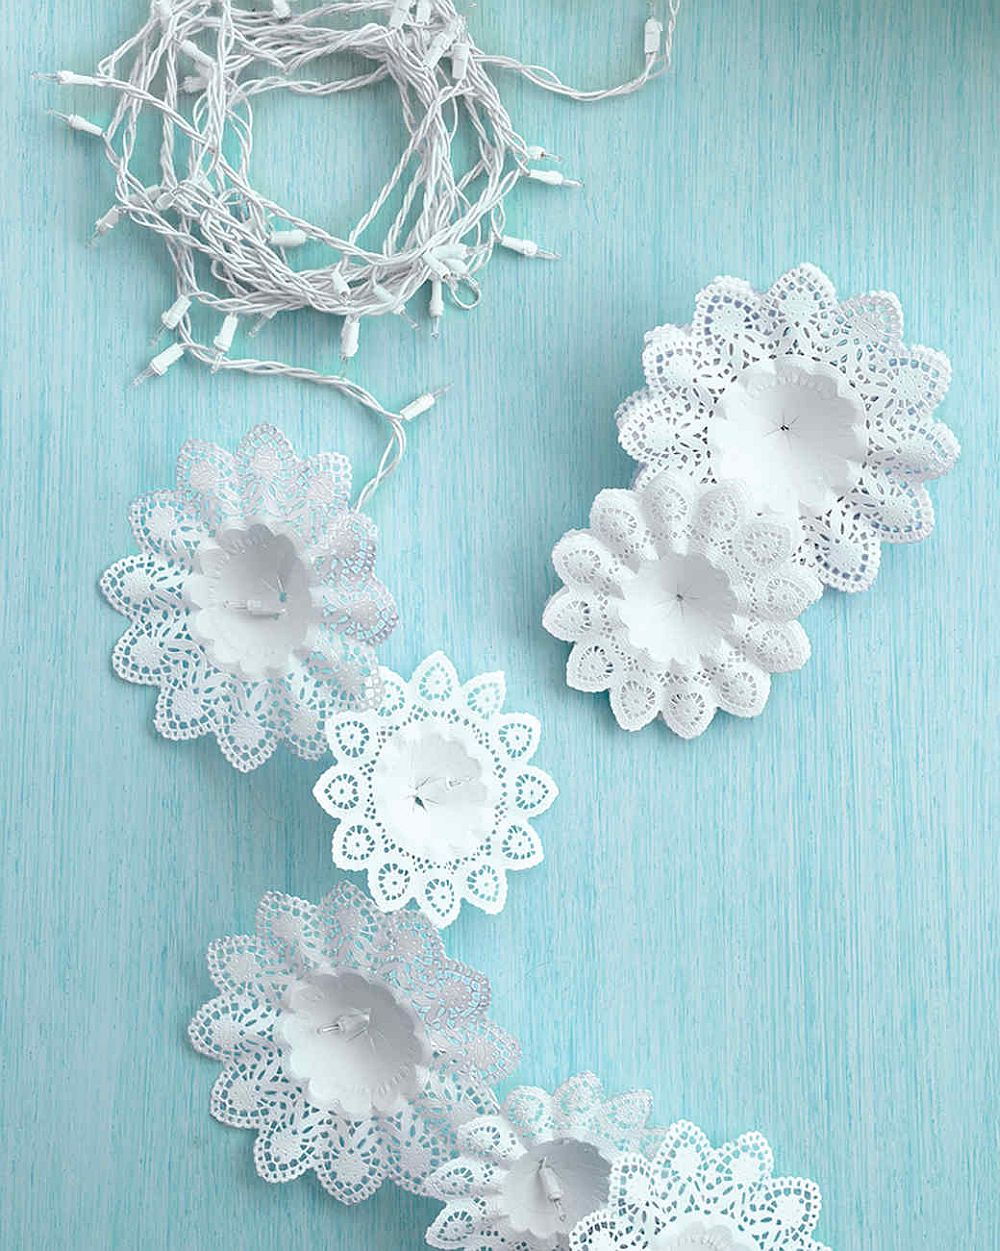 Charming-Snowflakes-and-Light-garland-idea